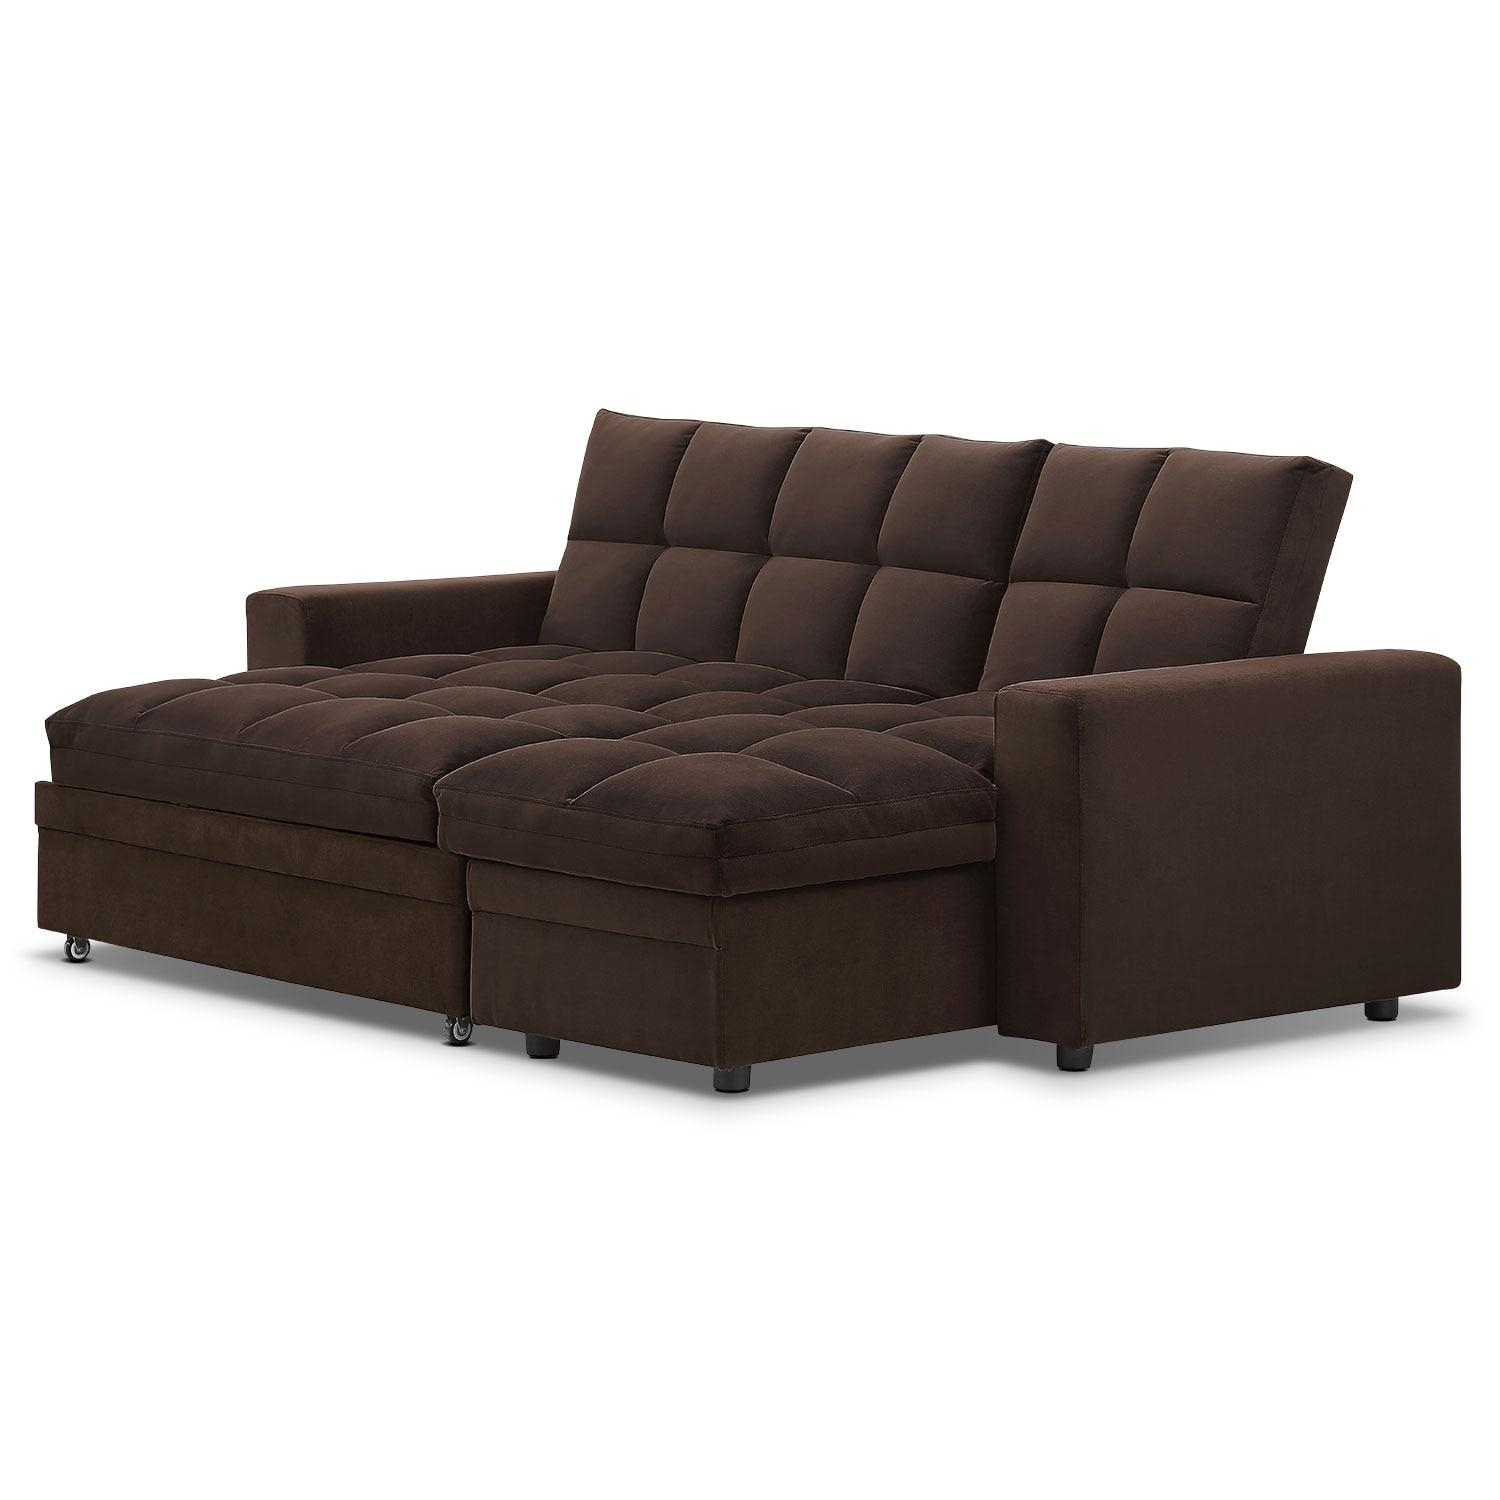 Metro Chaise Sofa Bed With Storage – Brown | American Signature Inside Chaise Sofa Beds With Storage (View 11 of 20)